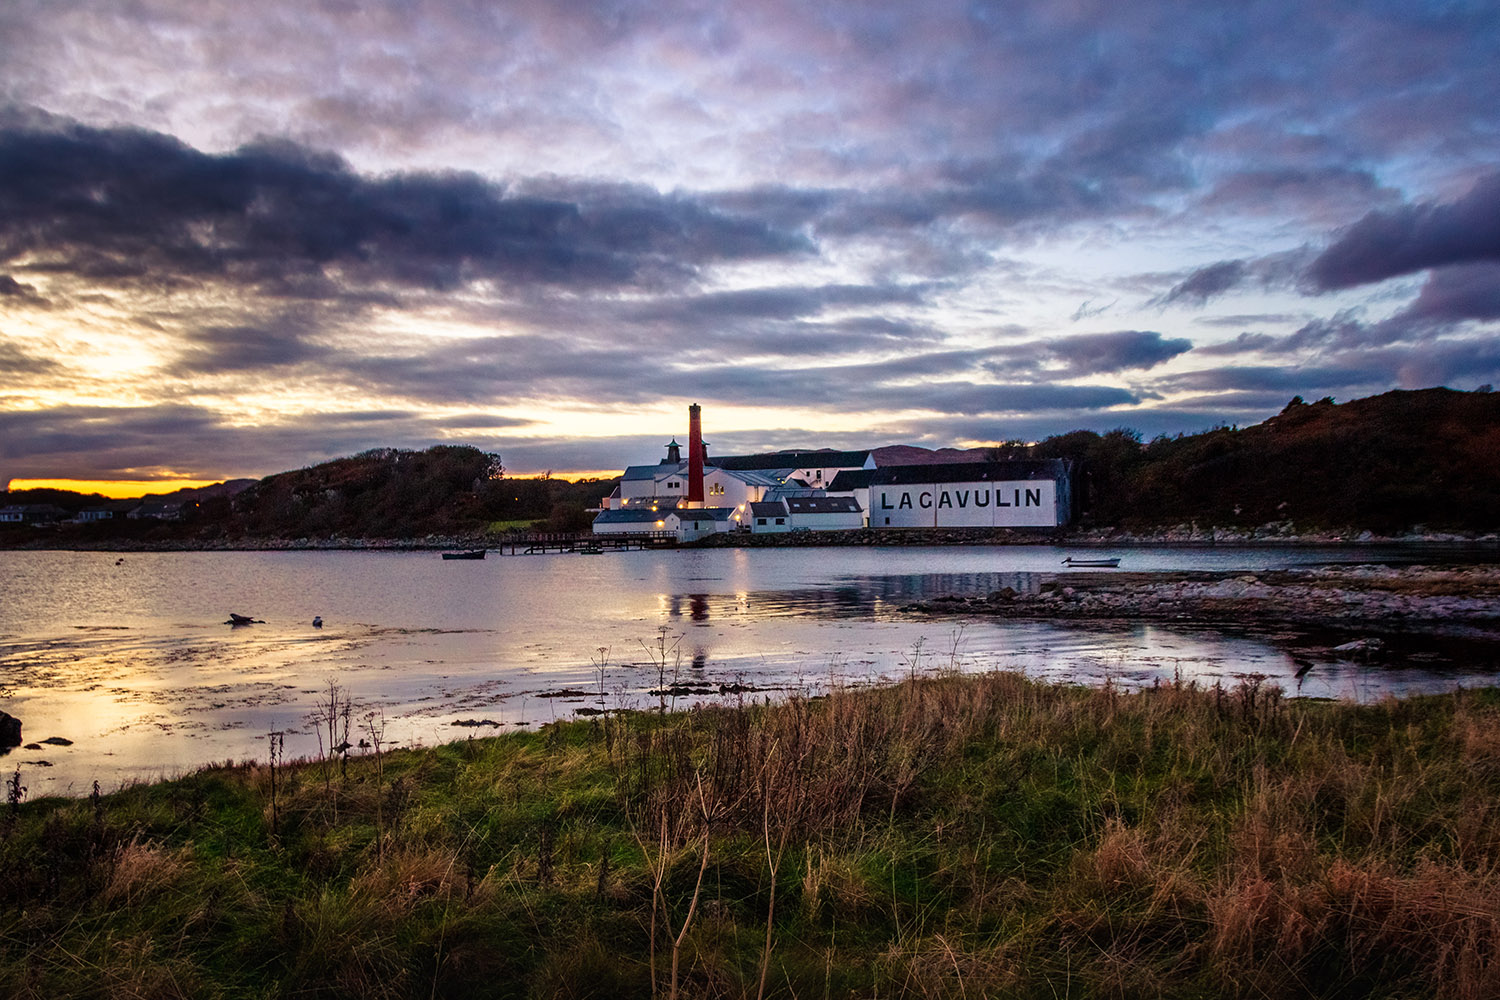 Lagavulin Distillery in Islay, a distillery that can be visited on our Scottish whisky tour - Scottish Spirit